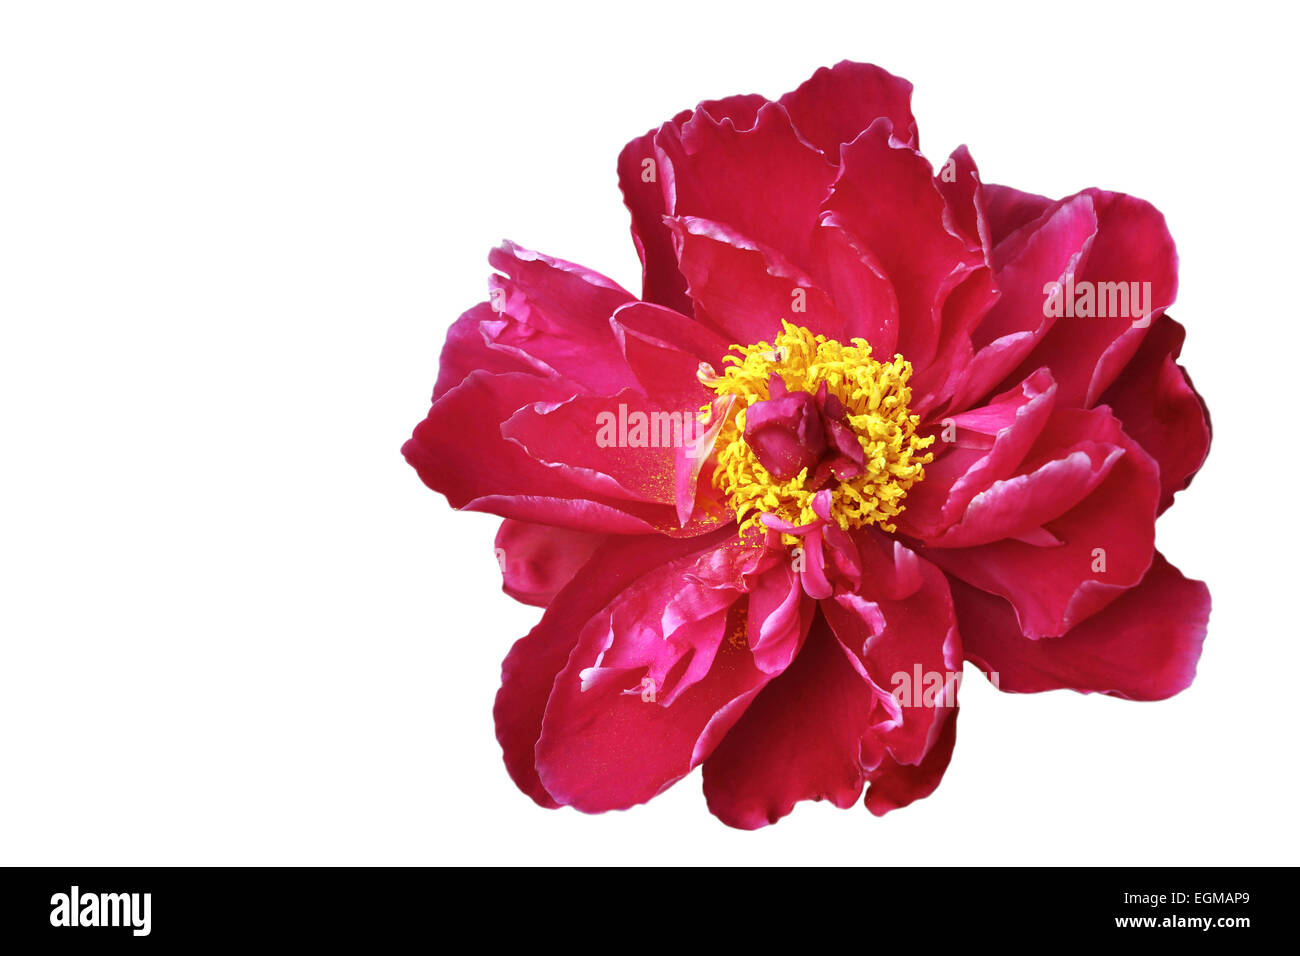 red peony isolated - Stock Image